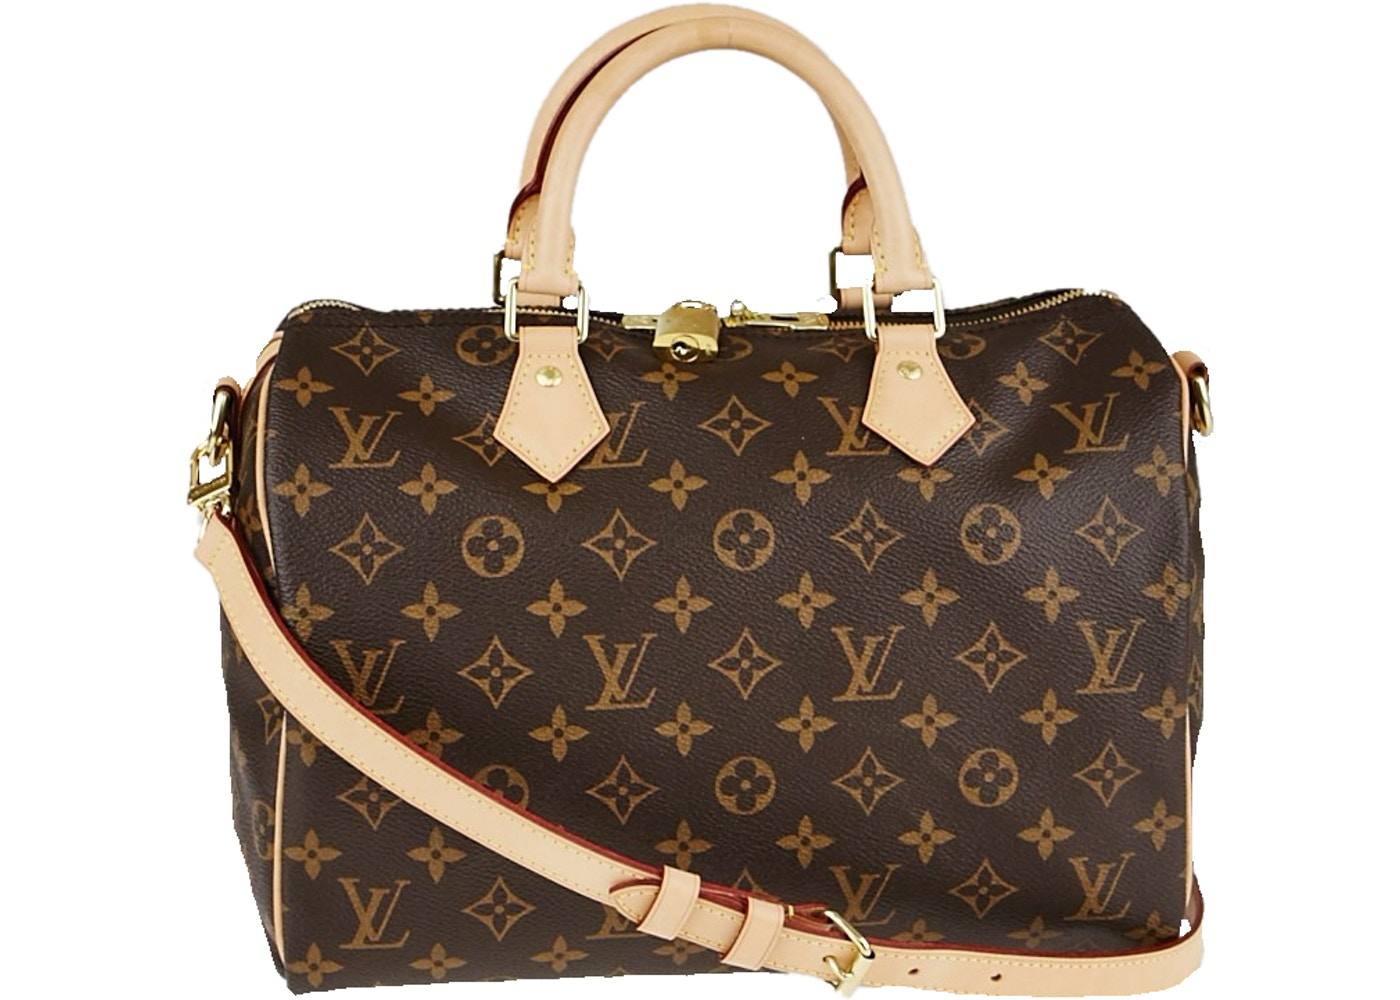 904c66914b04 Louis Vuitton Speedy Bandouliere Monogram 30 Brown